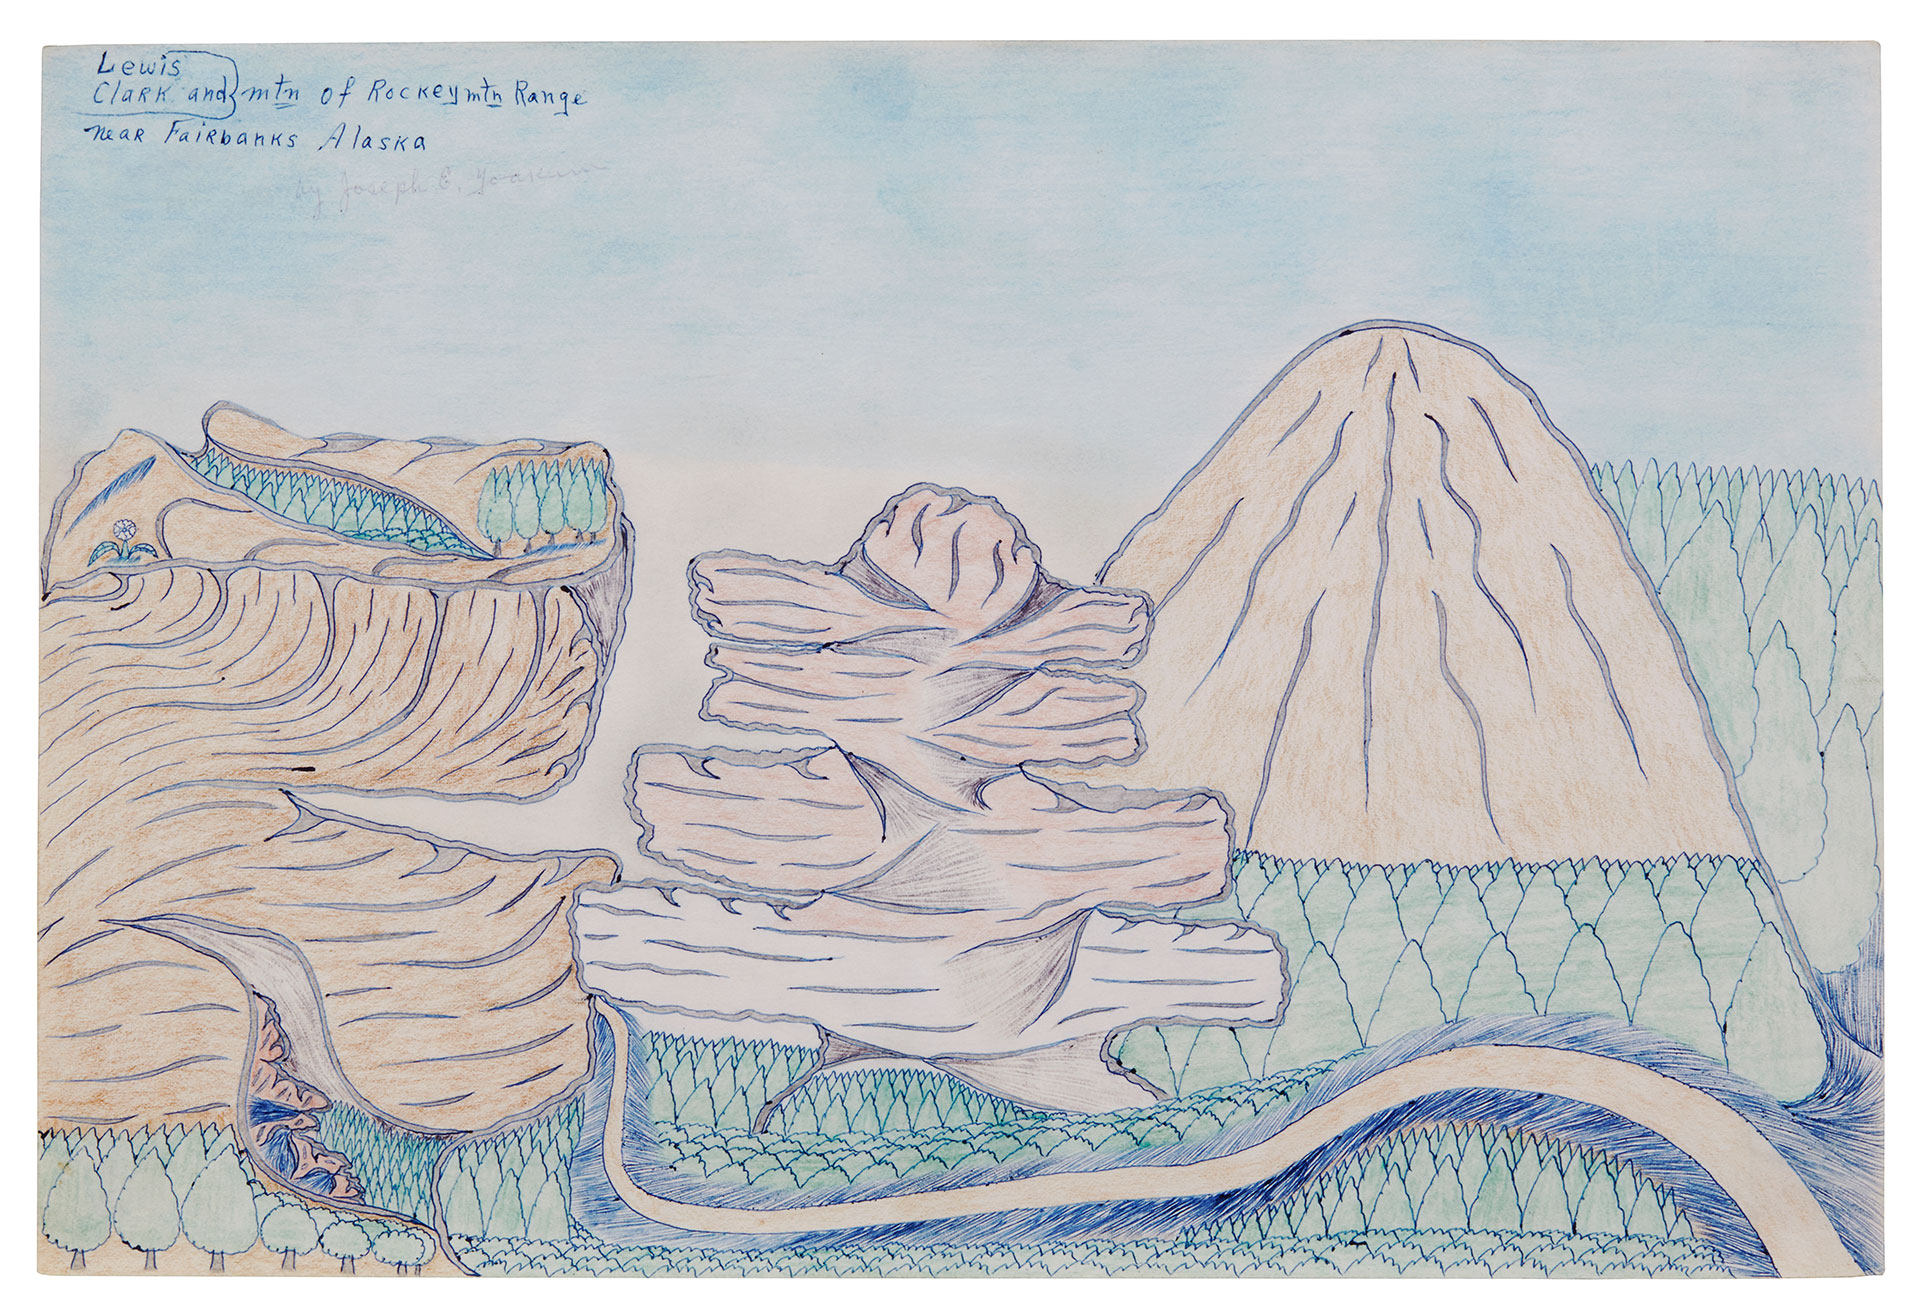 Abstract drawing of mountains and trees.